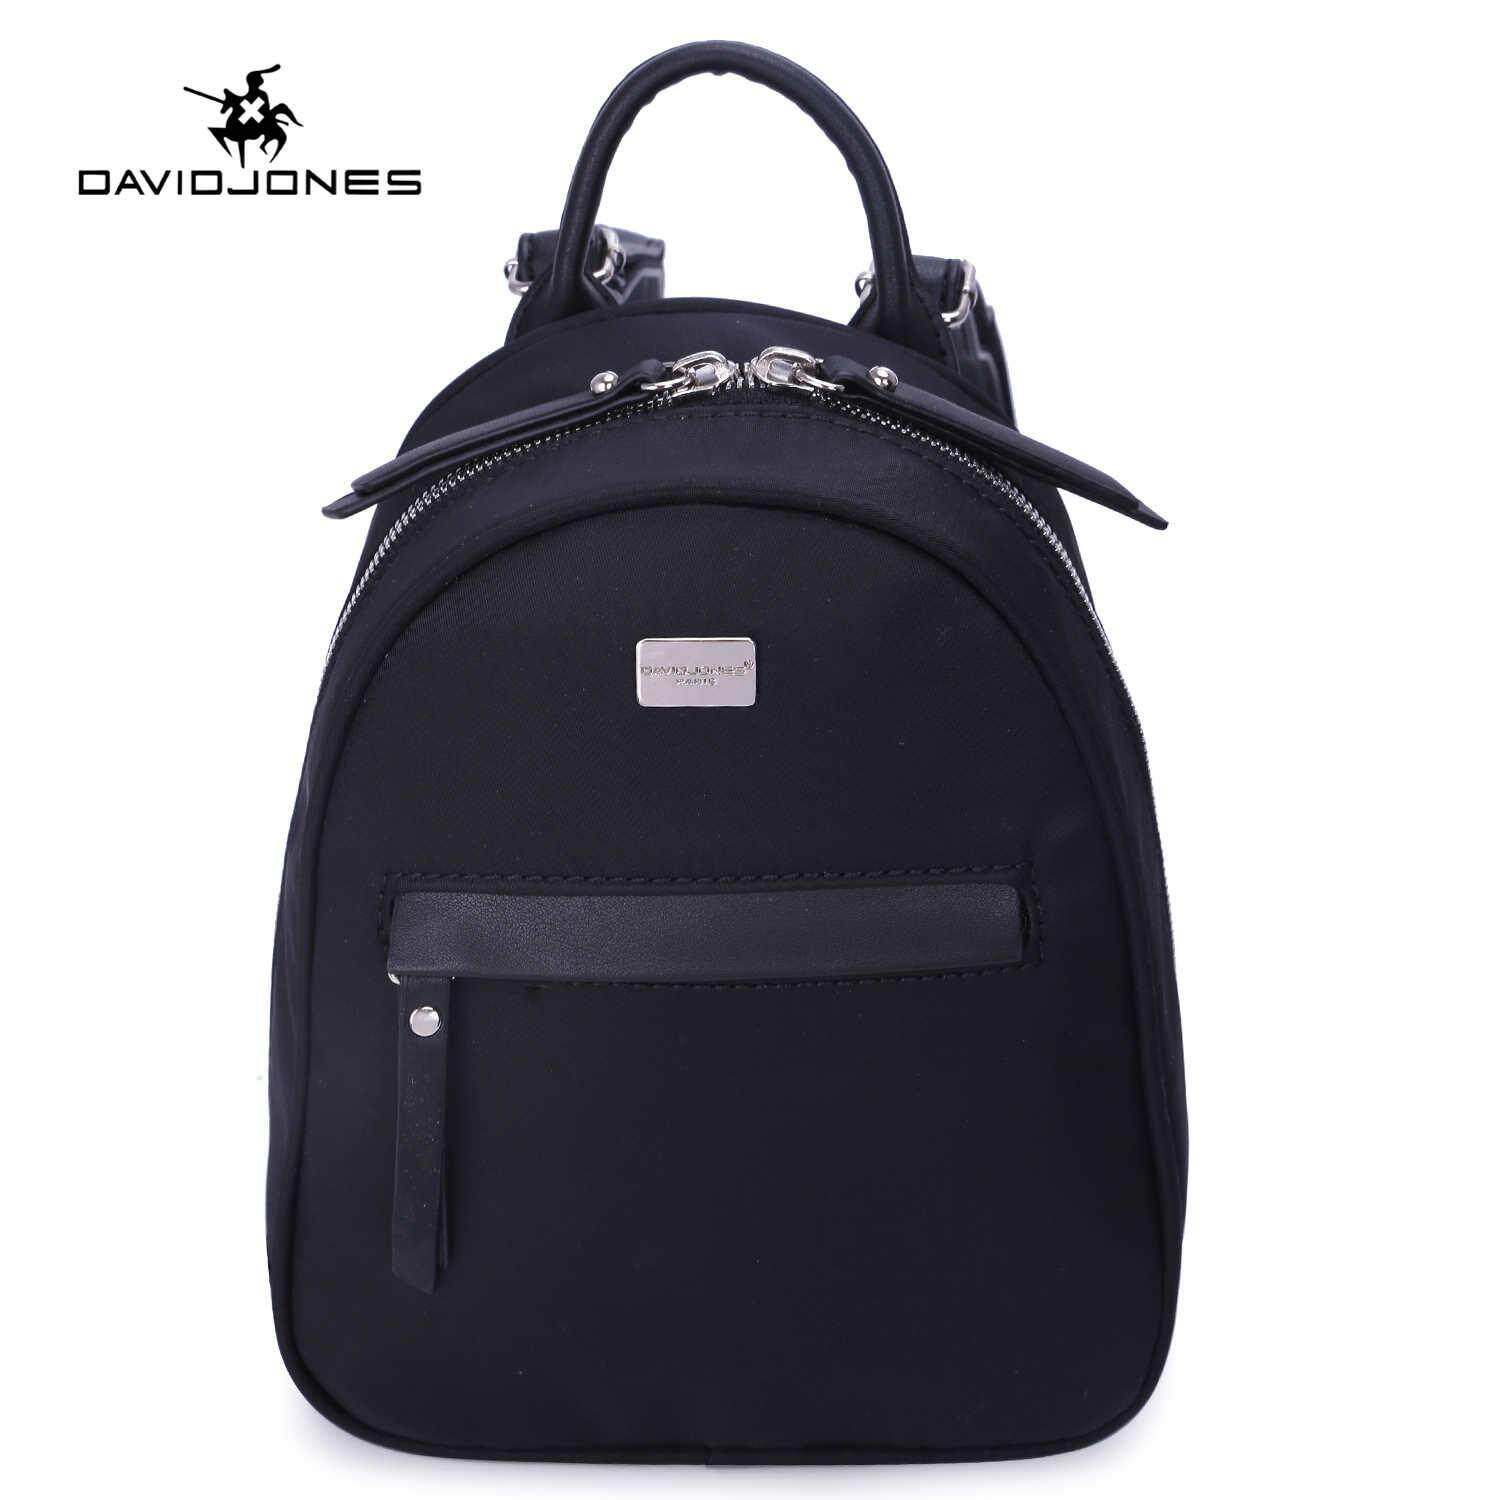 fbfc0219de Unisex Backpacks for sale - Unisex Travel Backpacks online brands ...